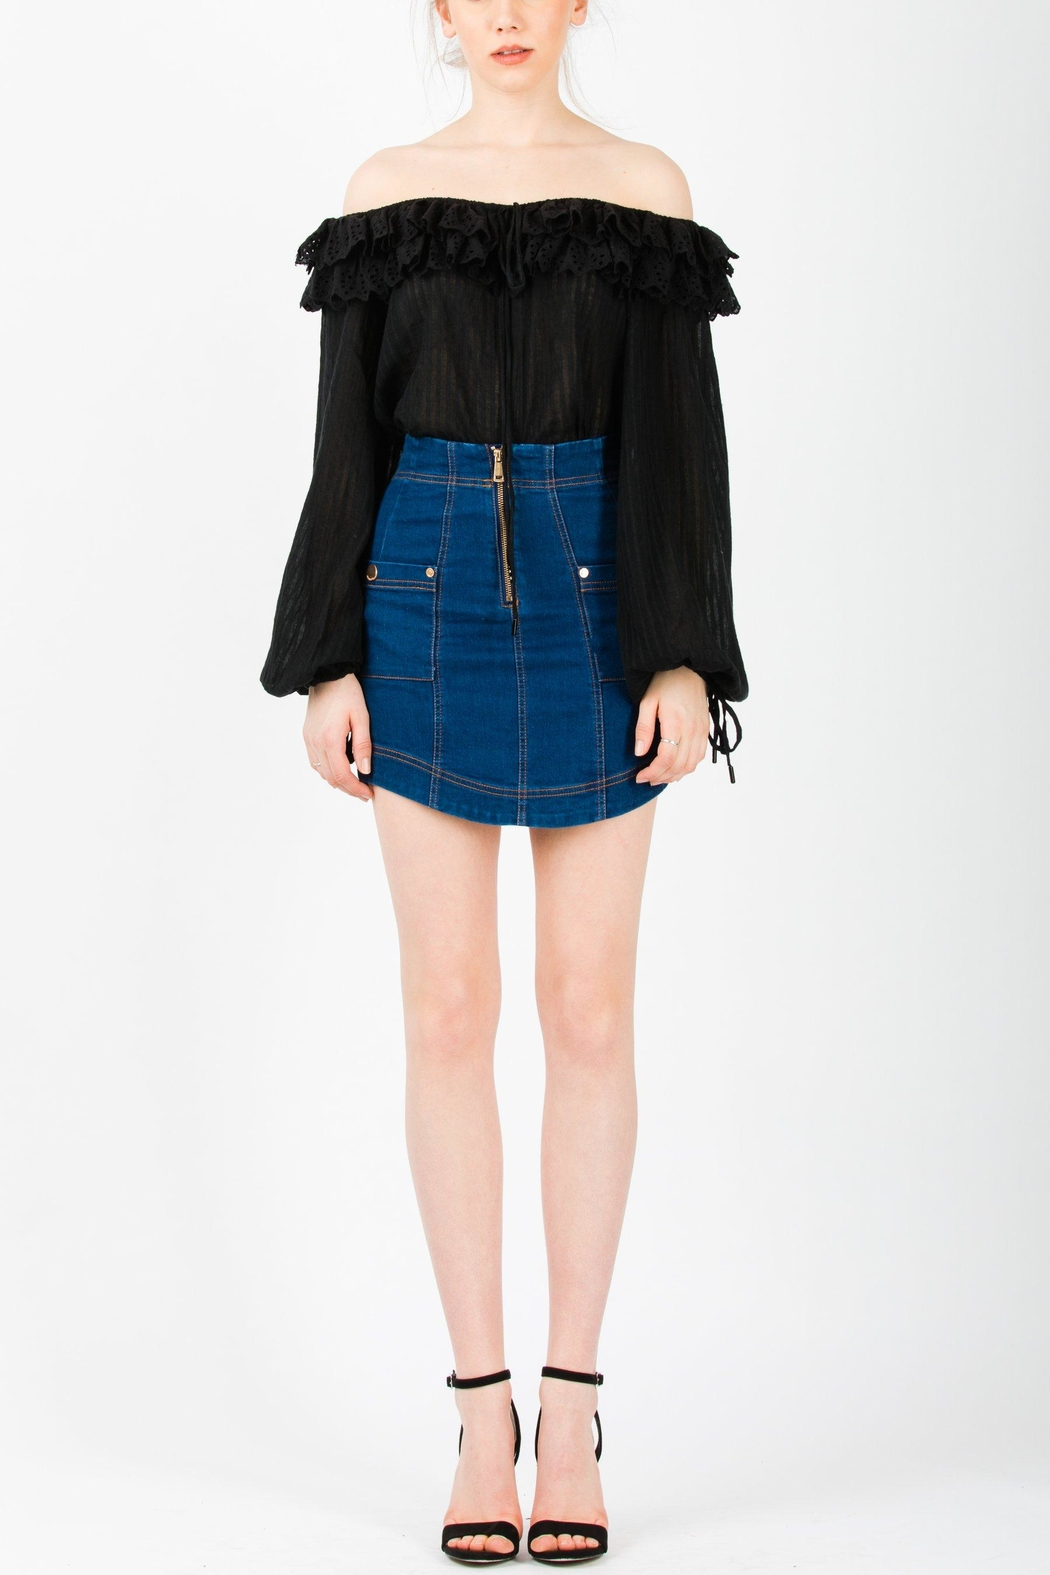 Alice McCall  Got-Me-Good Top - Front Full Image